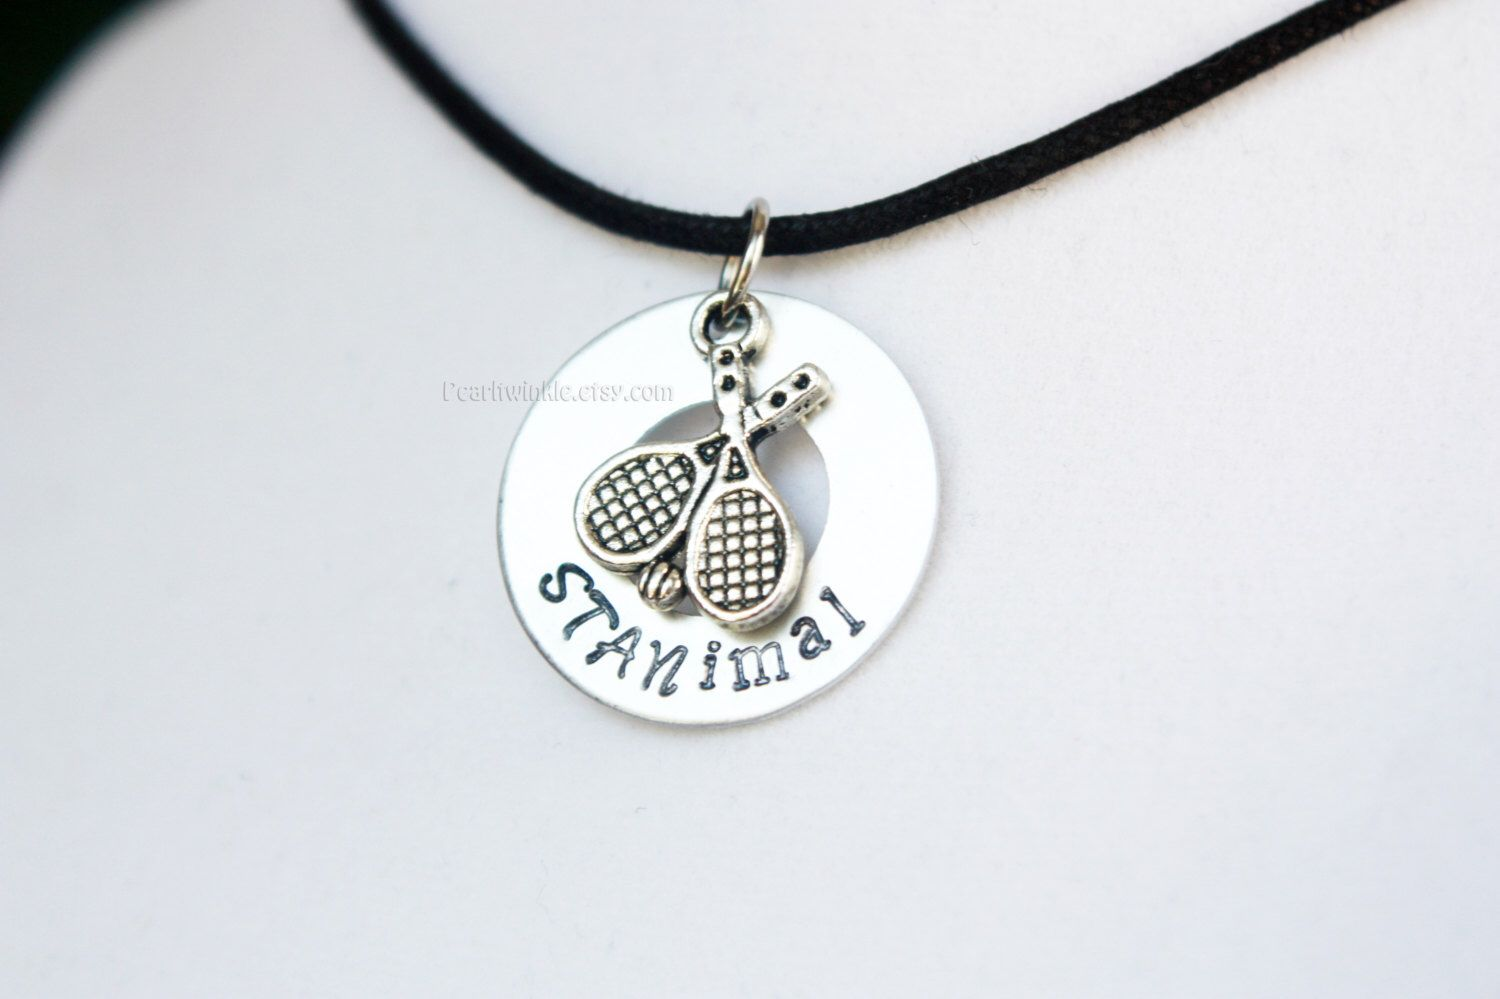 Stan wawrinka tennis pendant necklace stan the man stanimal stan wawrinka tennis racket pendant necklace stanimal stamped tennis charm keychain tennis mozeypictures Image collections